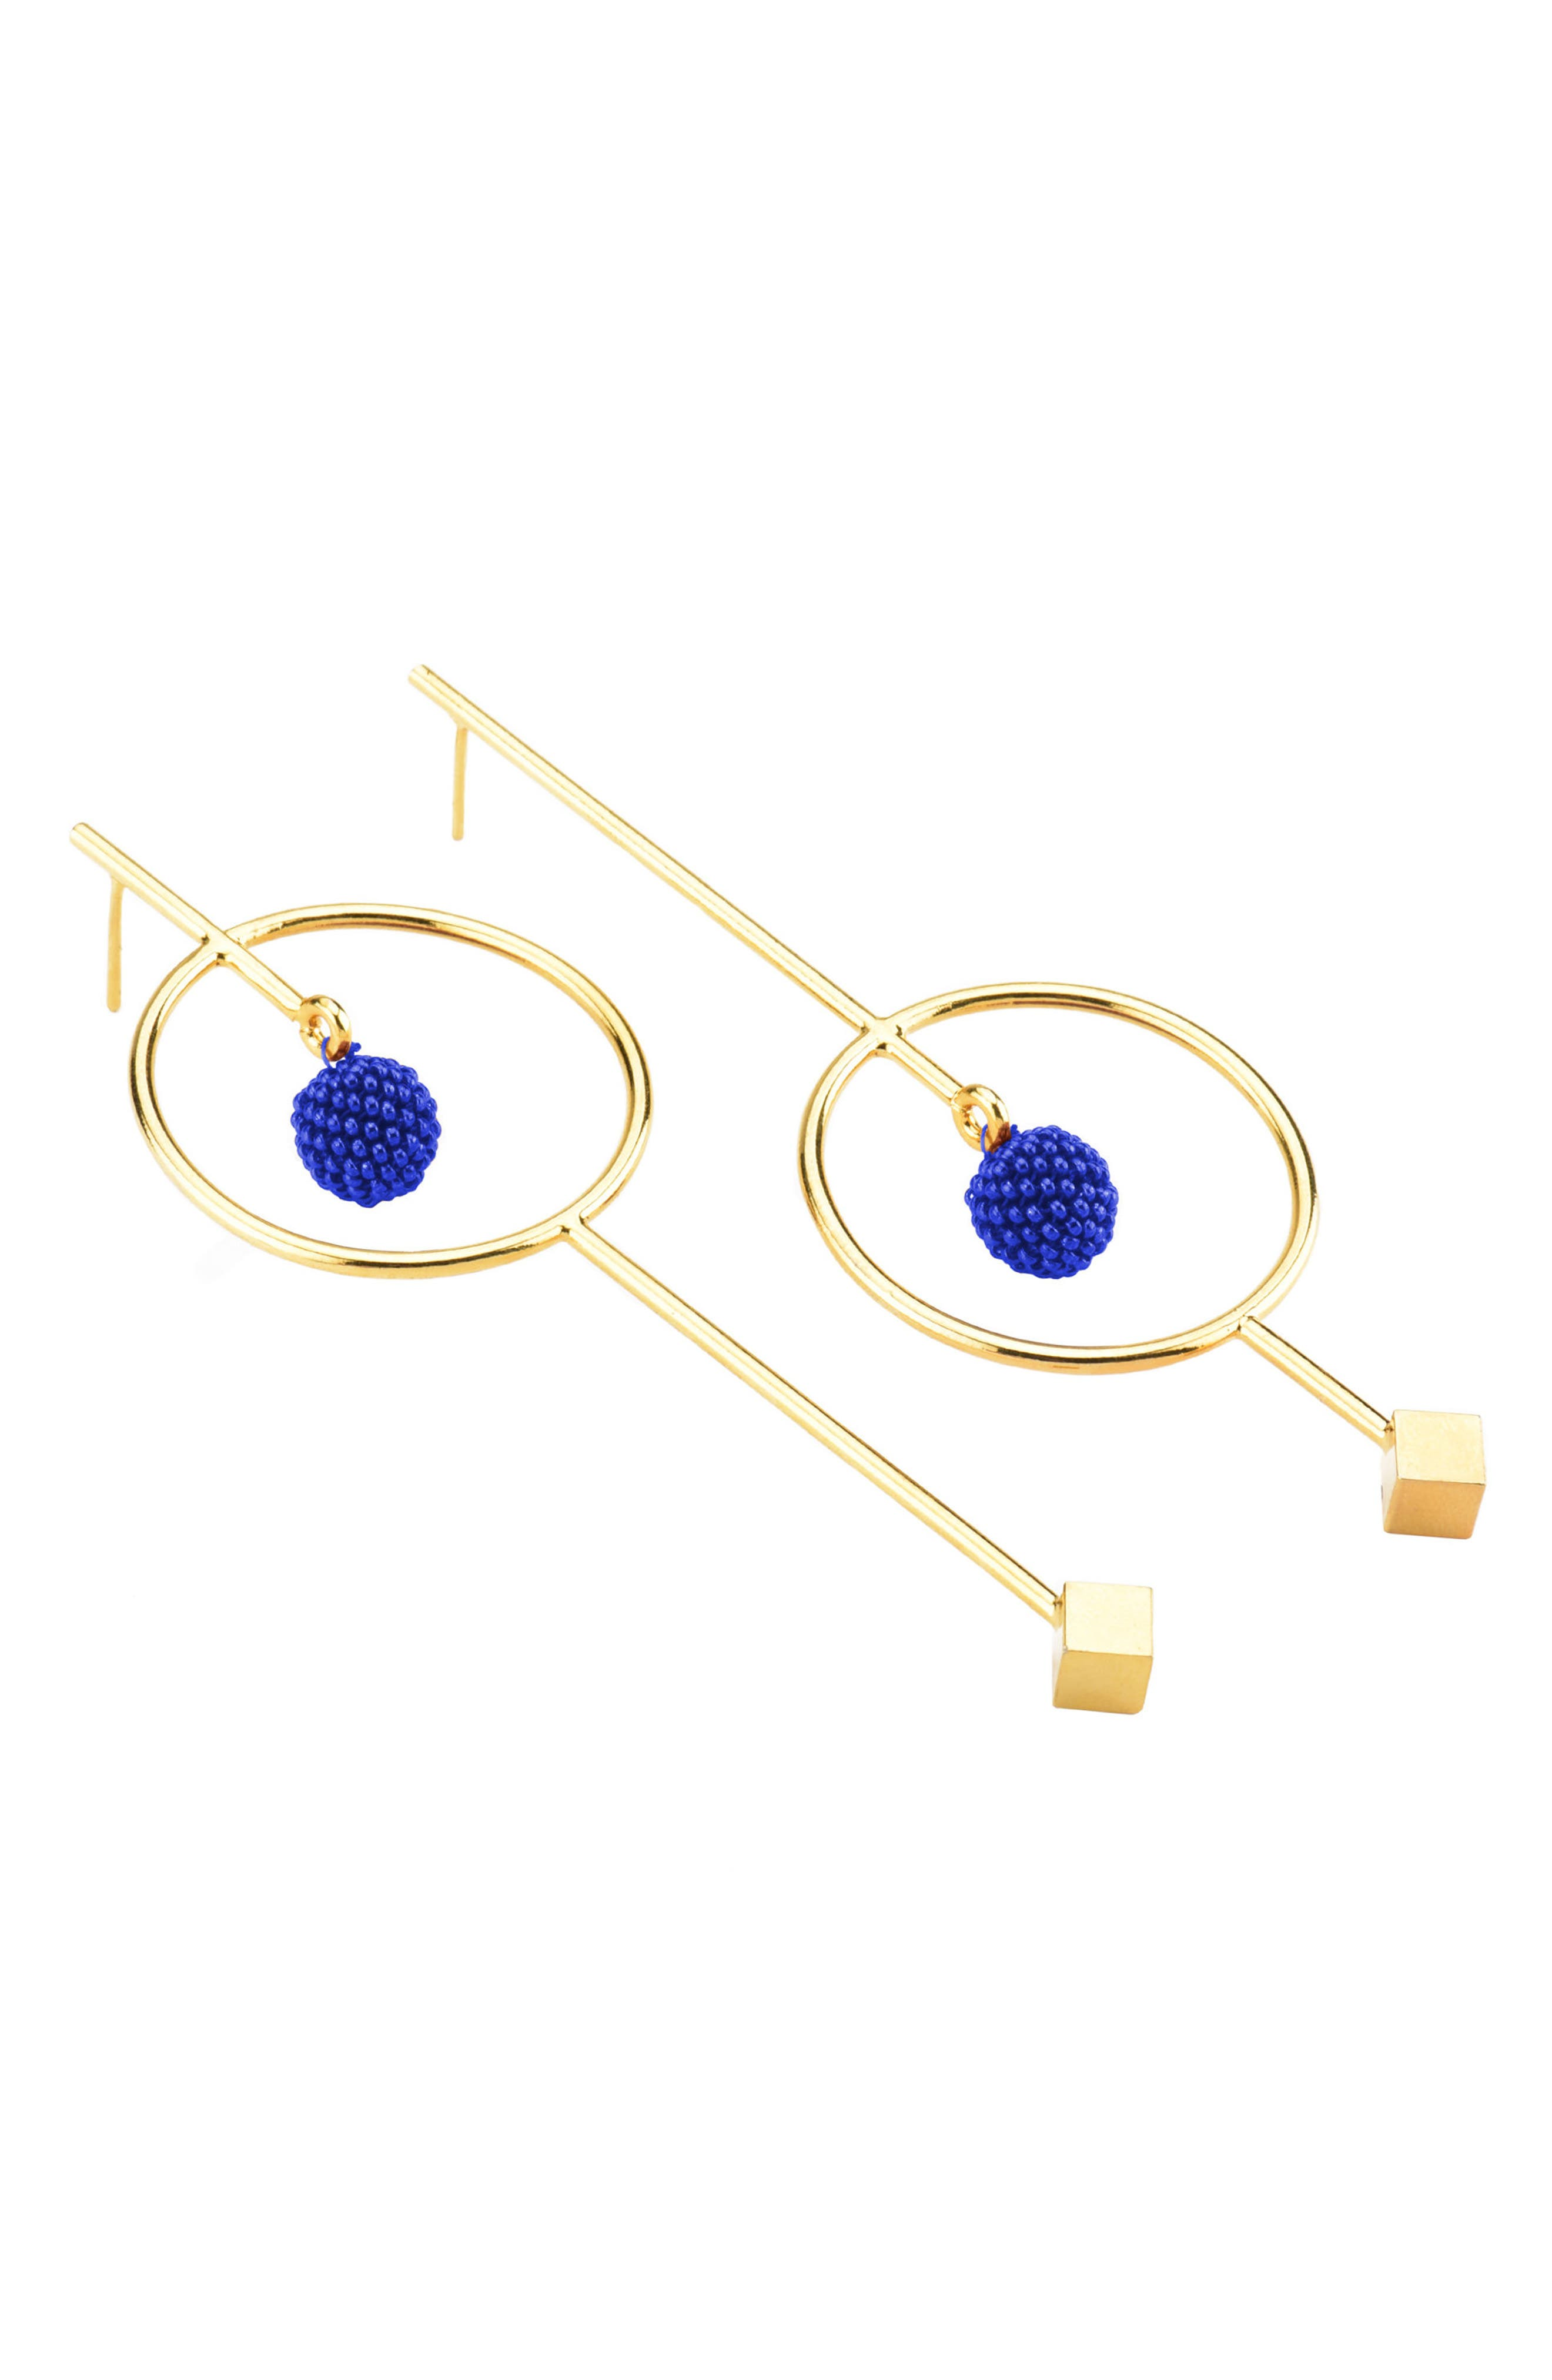 Circle & Bead Statement Earrings,                         Main,                         color, Blue